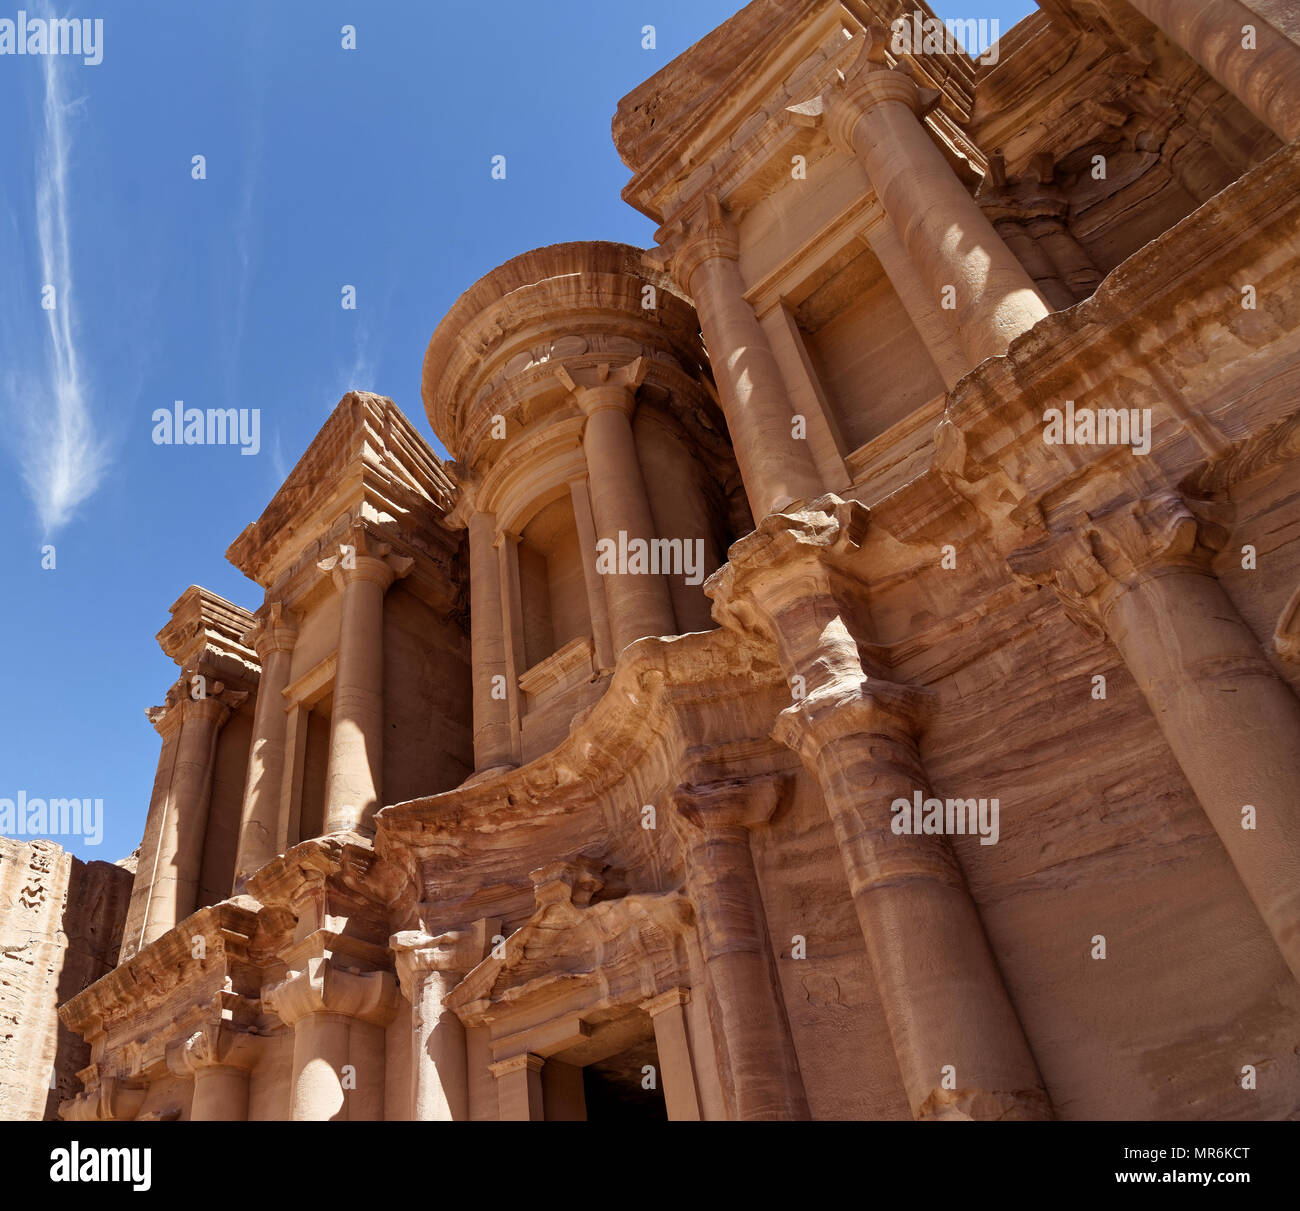 Photo taken at an oblique angle of a section of Al-Deir, the so-called monastery, in the necropolis of Petra, Jordan - Stock Image